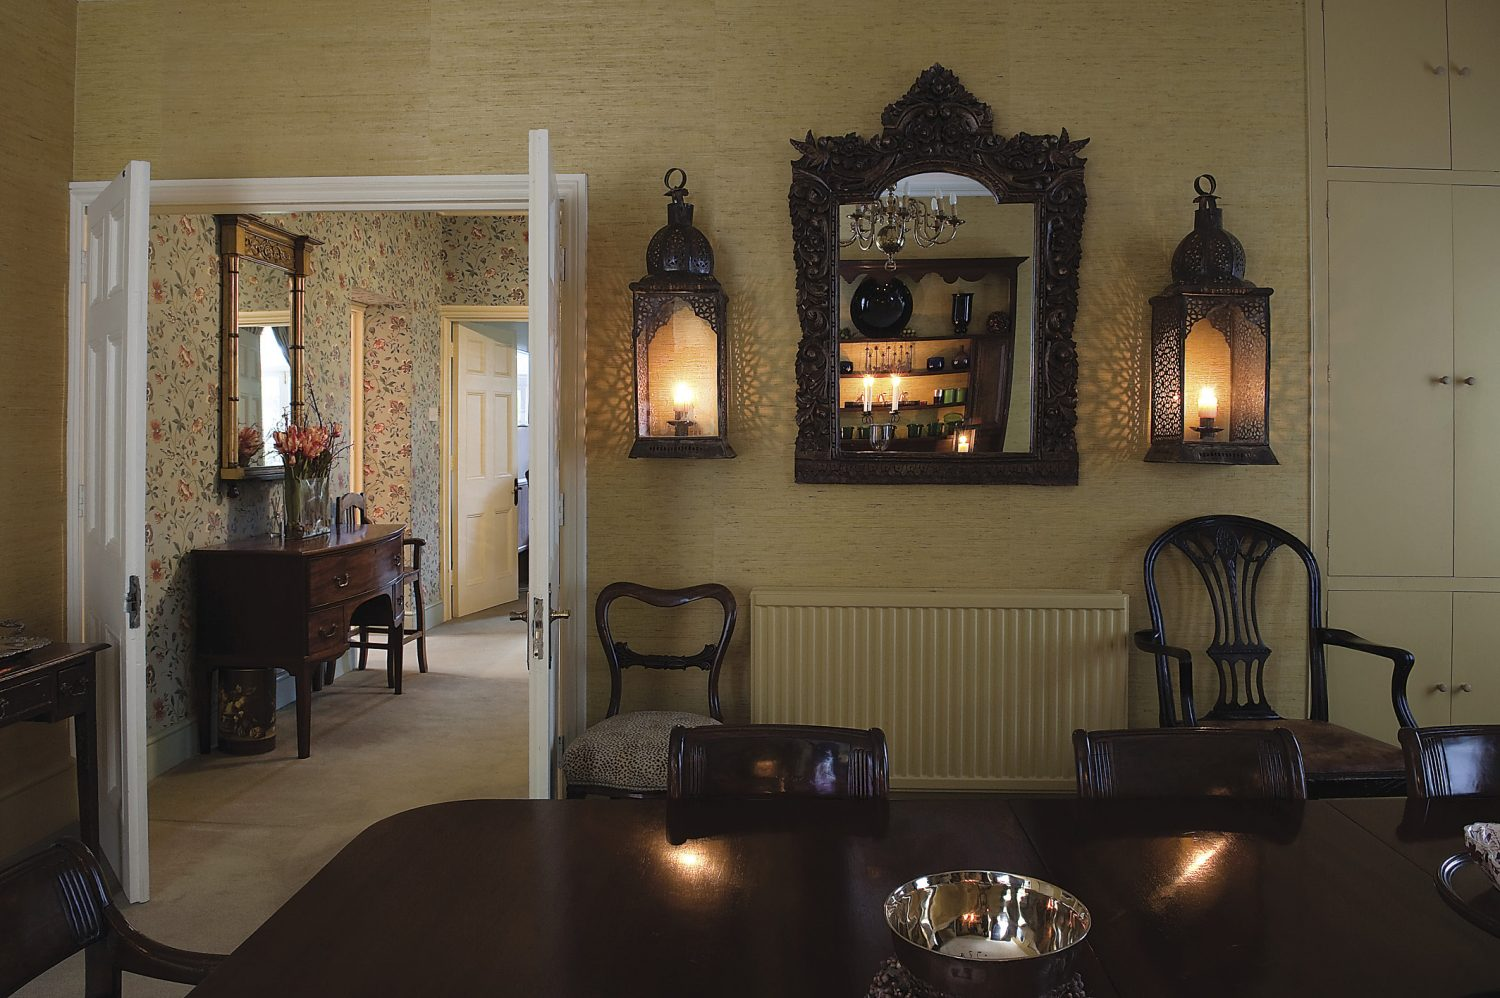 The dining room, decorated with lanterns from Morocco, and a mirror from India. Both were found when Sophie went on buying trips for Liberty